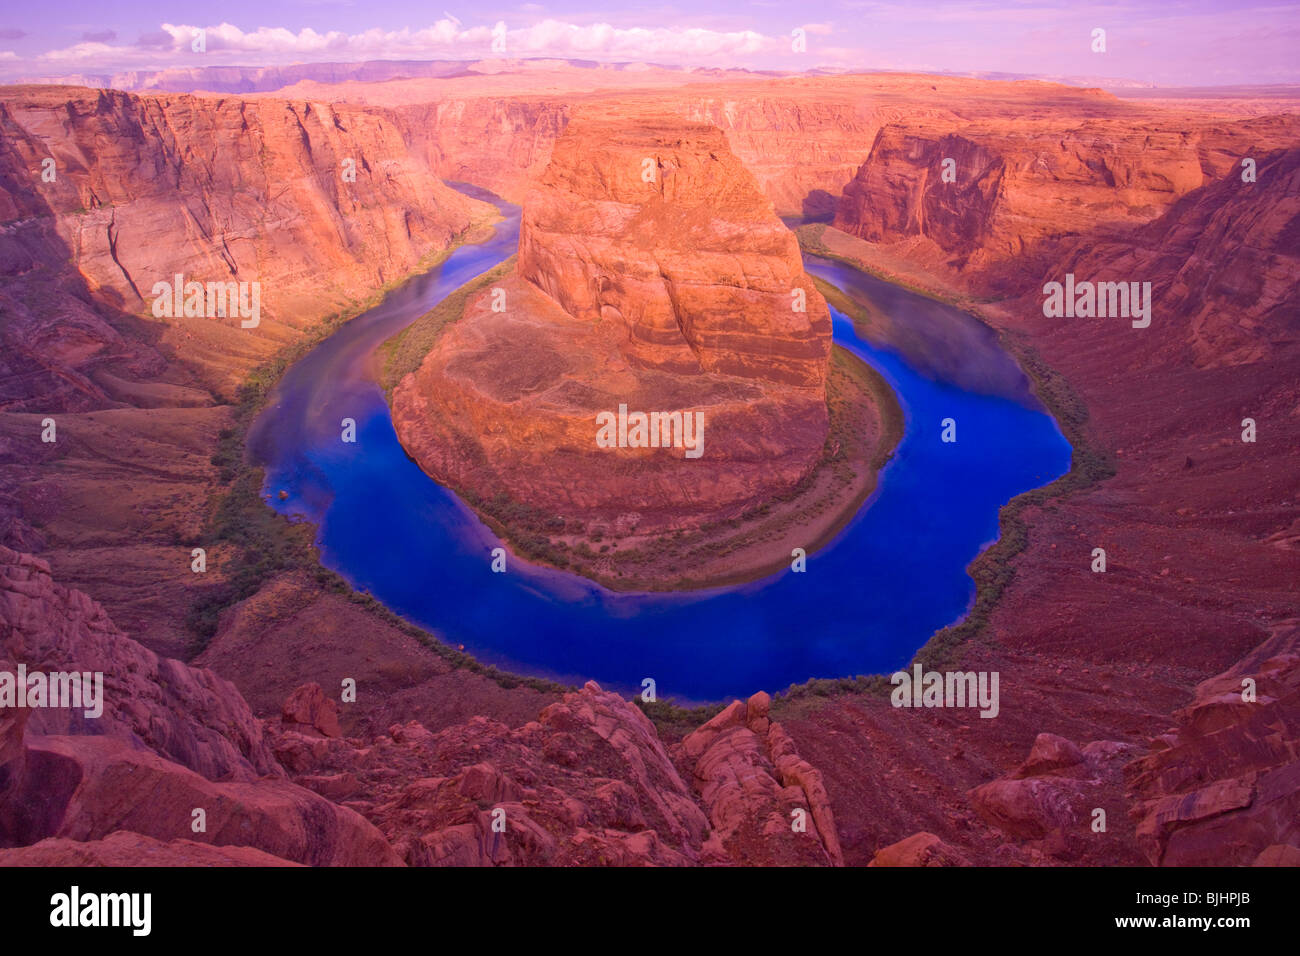 Horseshoe Bend of the Colorado River, Glen Canyon National Recreation Area, Arizona, between Grand Canyon and Lake - Stock Image